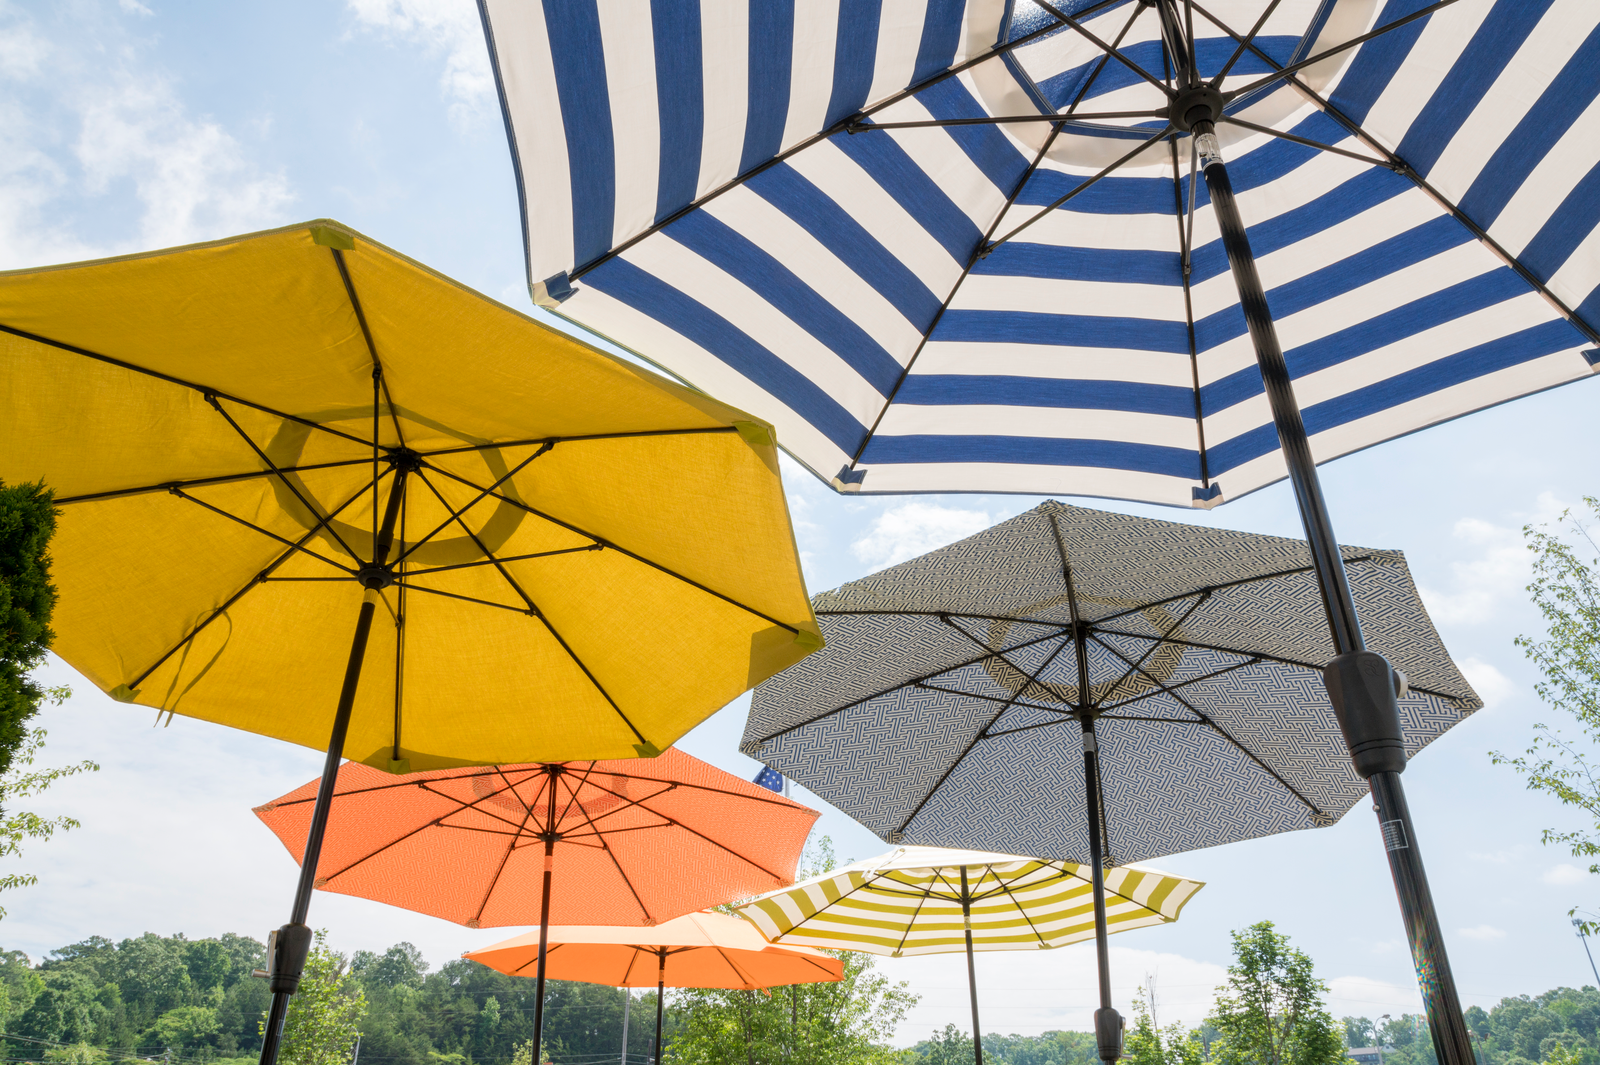 Exceptional SPINNING THE COLOR WHEEL: When It Comes To Selecting Your Patio Umbrella,  One Of The Hardest Decisions Boils Down To Color Choice. Though Bright  Colors And ...